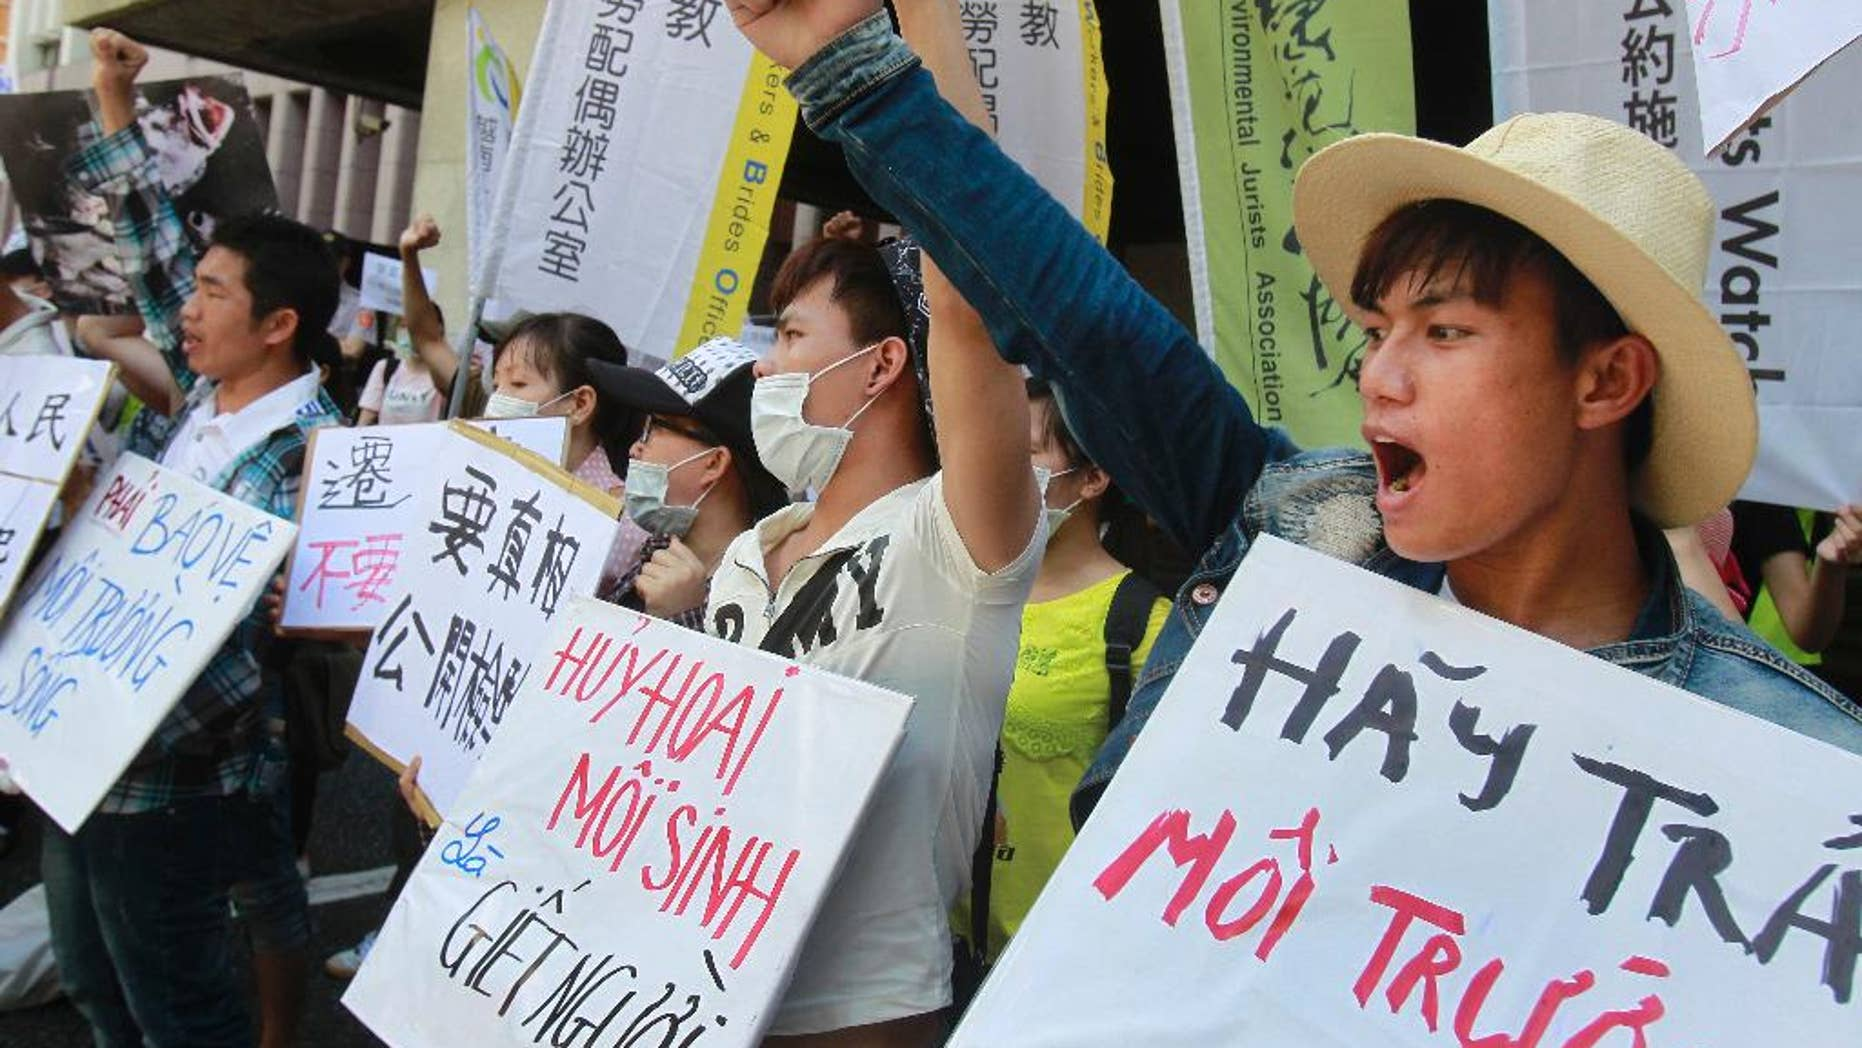 """FILE - In this Aug. 10, 2016 file photo, Vietnamese activists shout slogans and hold placards reading ''Destroying the environment is killing, """"left, and ''Return clean seawater to us'' during a protest to urge Formosa Plastics Group to take responsibilities for the cleanup in Vietnam, in Taipei, Taiwan.    Hundreds of Vietnamese fishermen have filed claims seeking compensation from a Taiwanese steel company that acknowledged its toxic chemicals caused a massive fish kill, a local priest helping the fishermen said Tuesday, Sept. 27, 2016.  (AP Photo/Chiang Ying-ying, File)"""